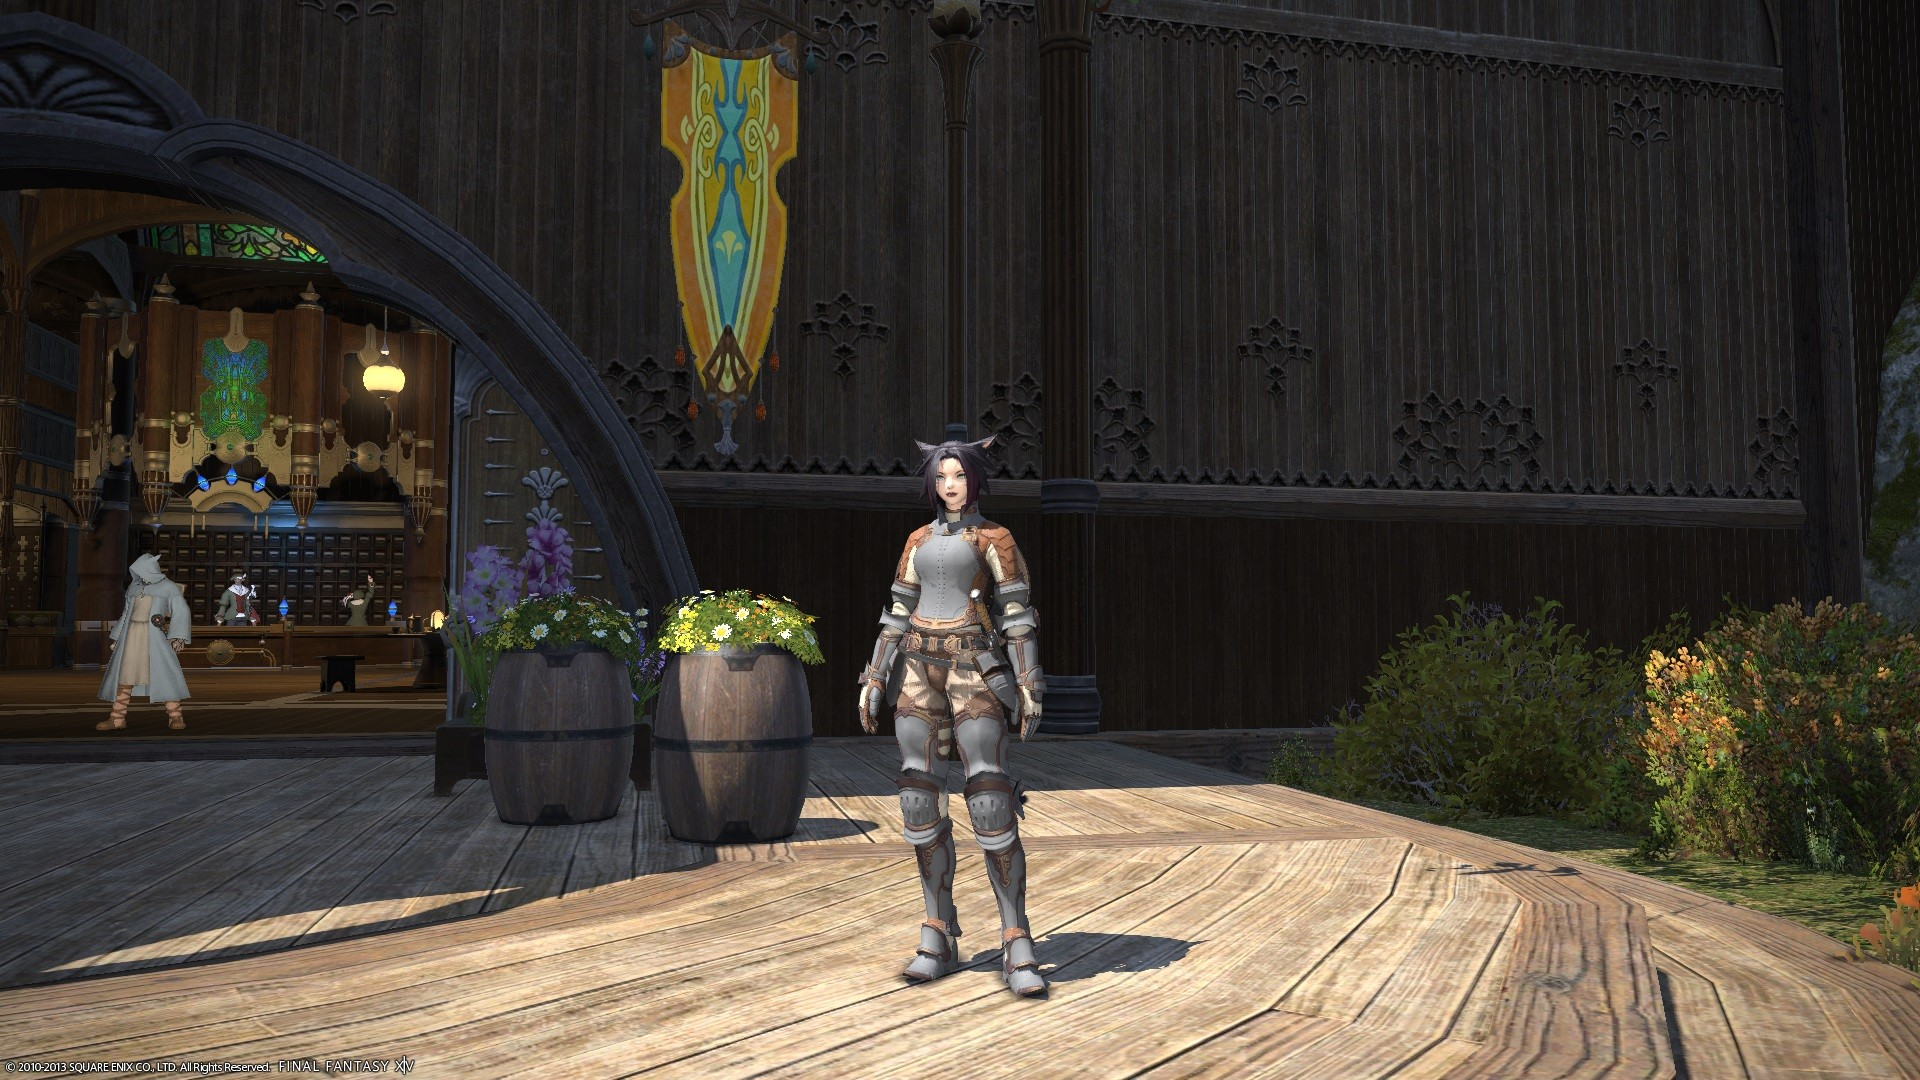 Final Fantasy XIV: A Realm Reborn - Level 16 Armor, not even close to Endgame. I wish other Games had that as well.